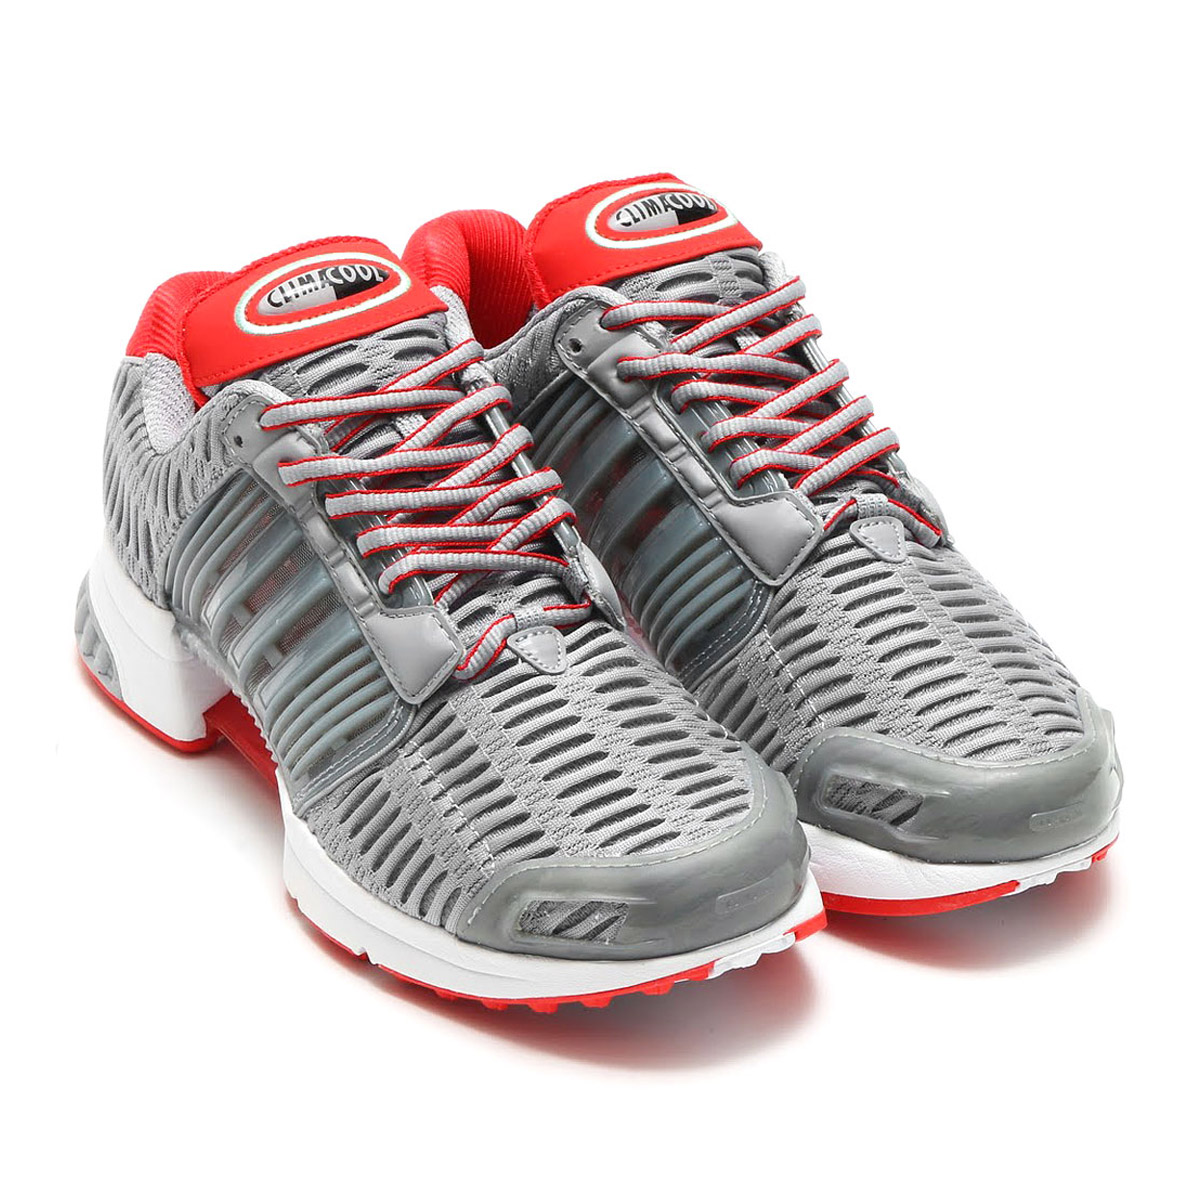 the best attitude e0fb7 607e5 adidas CLIMACOOL 1 (アディダスクライマクール 1) (Mid Grey S14/Mid Grey S14/Red)